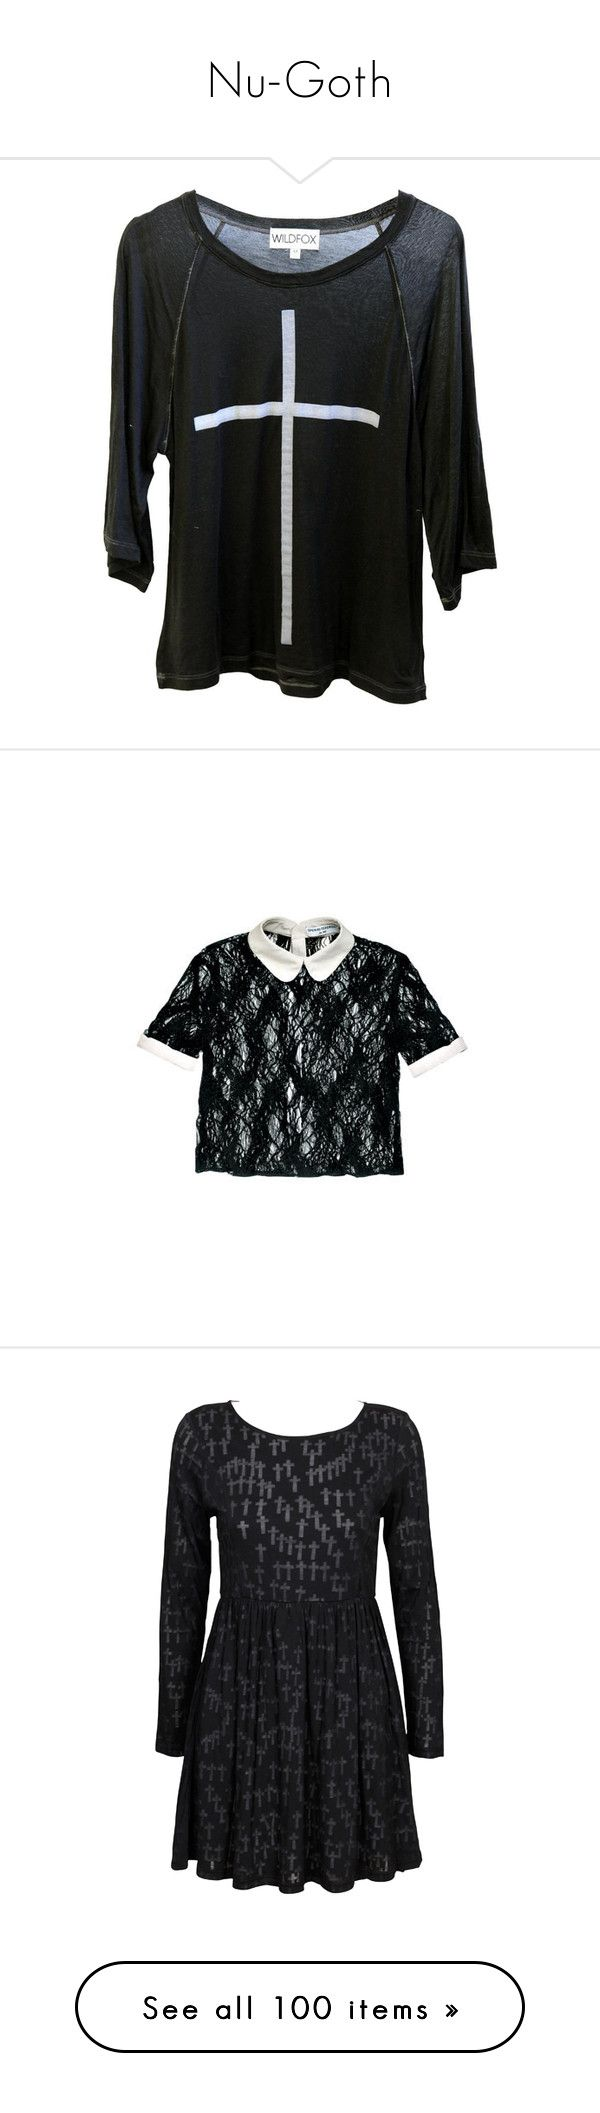 """""""Nu-Goth"""" by punkhale ❤ liked on Polyvore featuring tops, t-shirts, shirts, sweaters, raglan sleeve shirts, cross tee, t shirts, over sized t shirt, raglan shirts and blouses"""